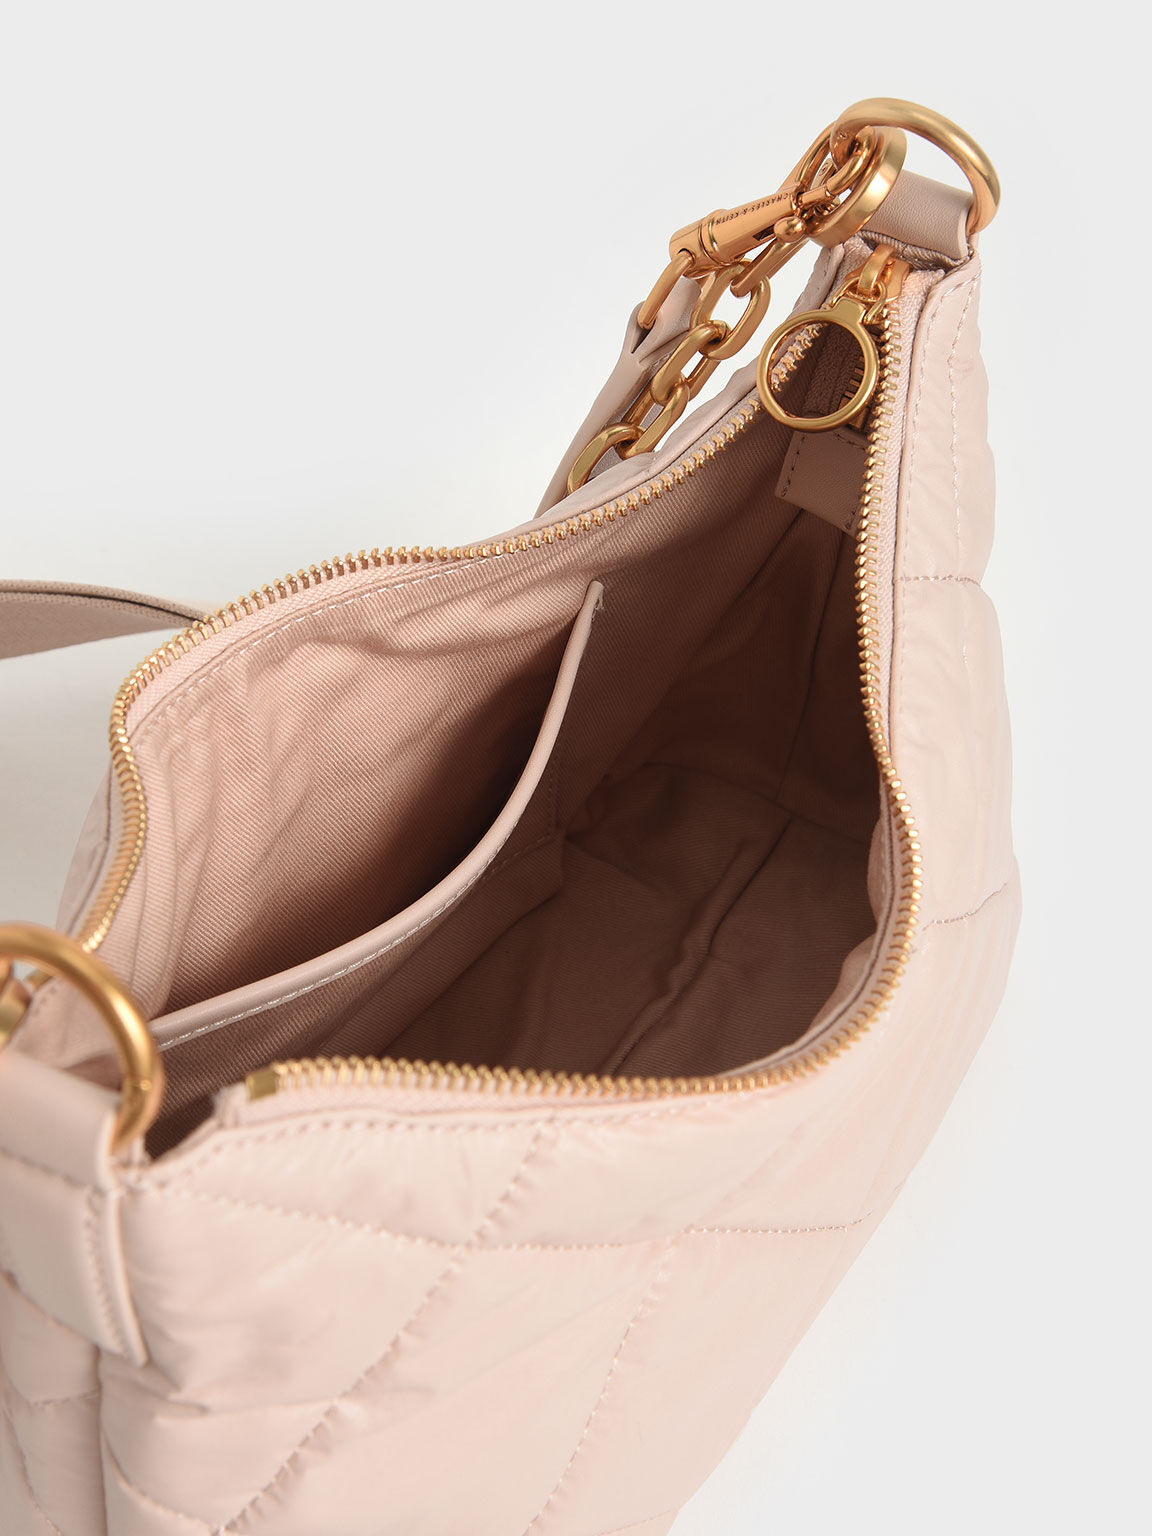 Puffy Quilted Chain Handle Bag, Light Pink, hi-res